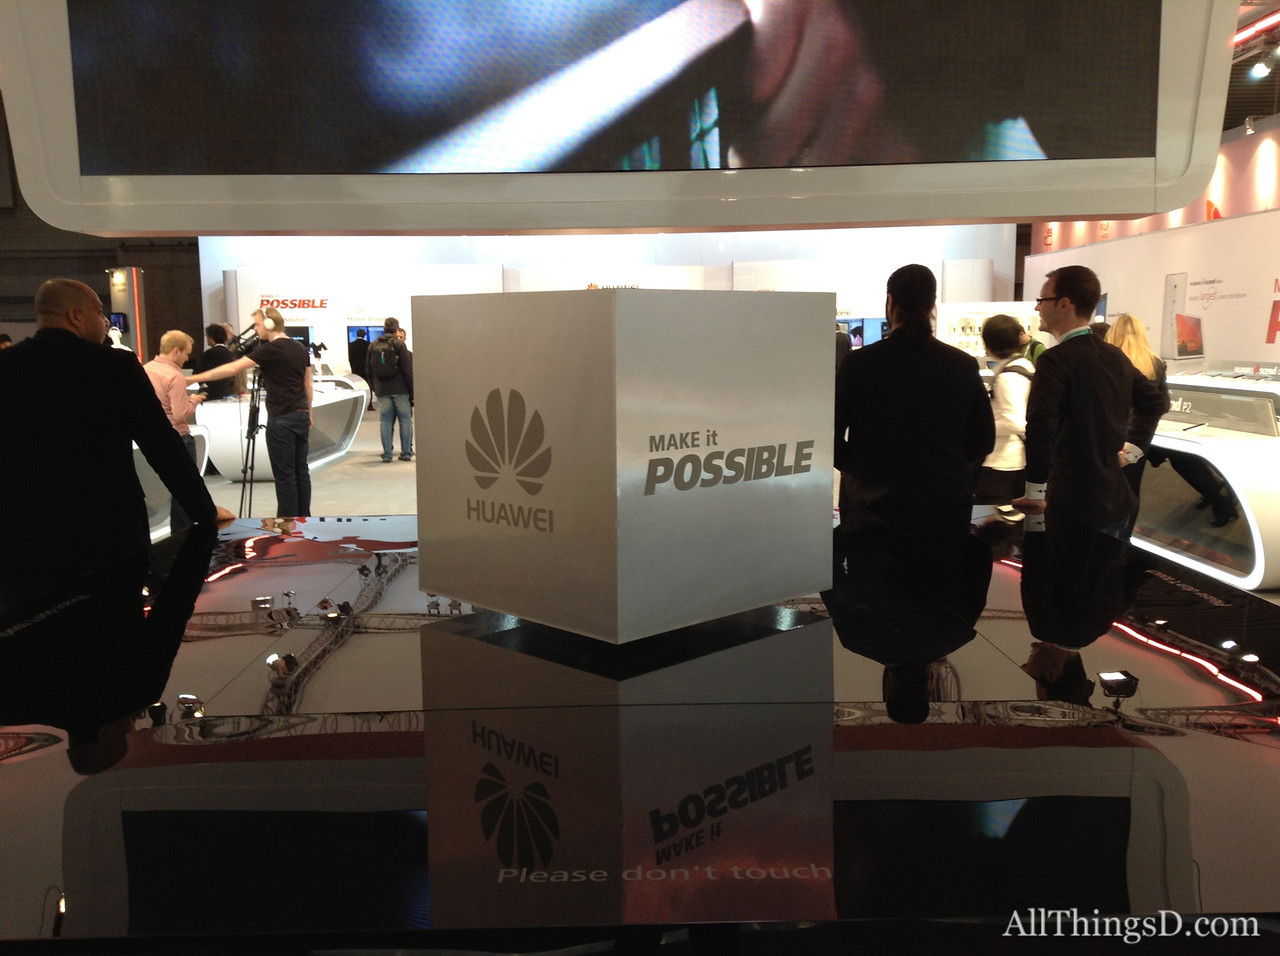 """Huawei's booth features, along with its devices, this levitating metal cube feature the company's new """"make it possible"""" tagline."""